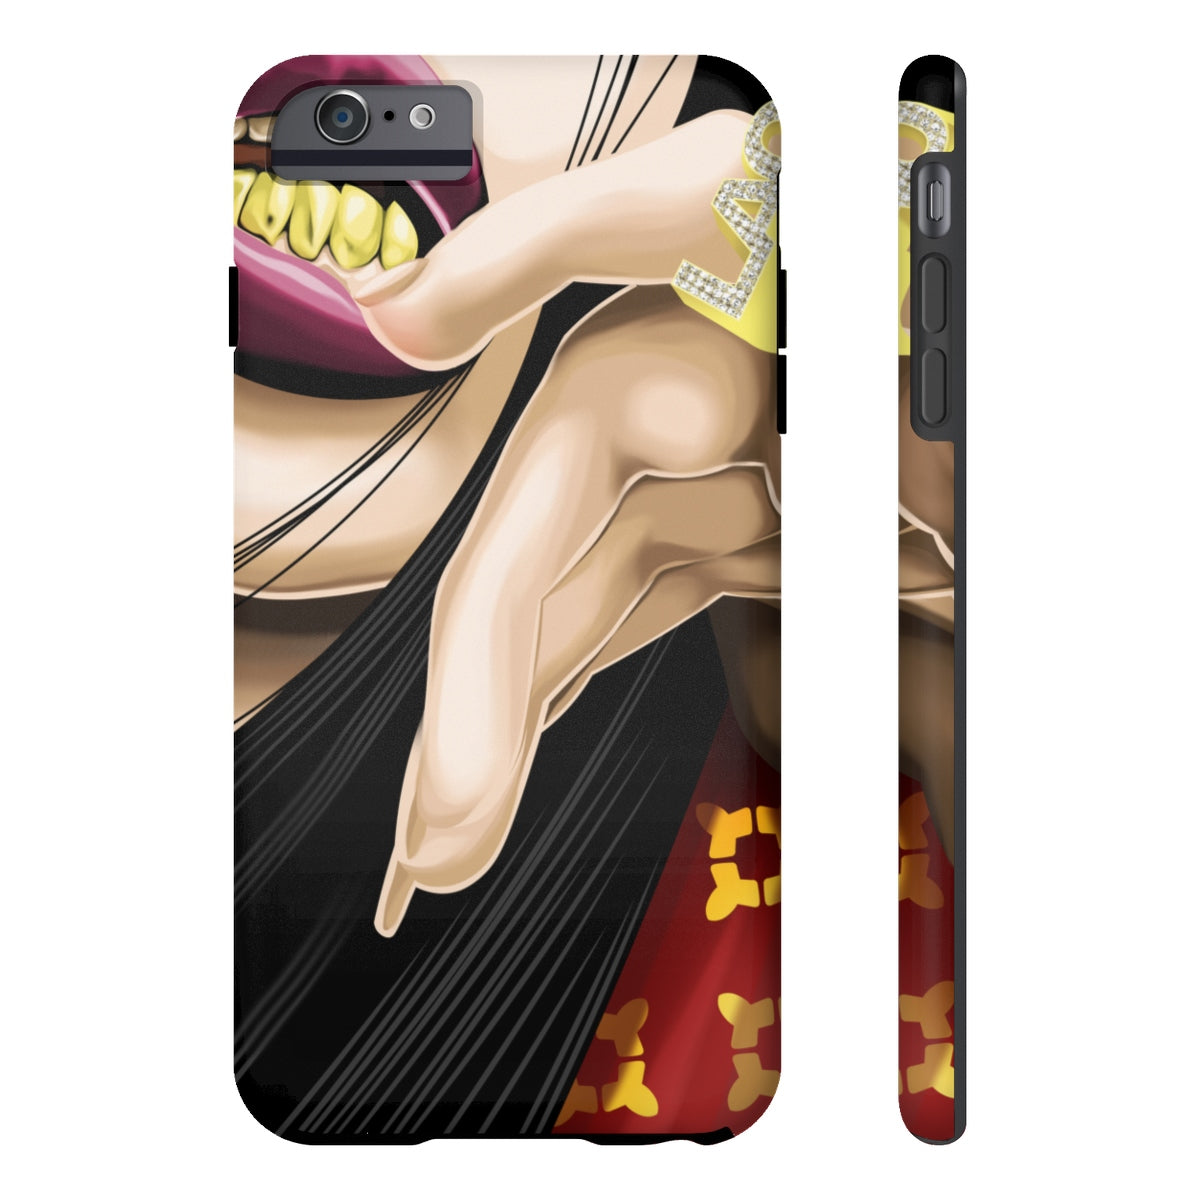 Sao Grillz Case Mate Tough Phone Cases